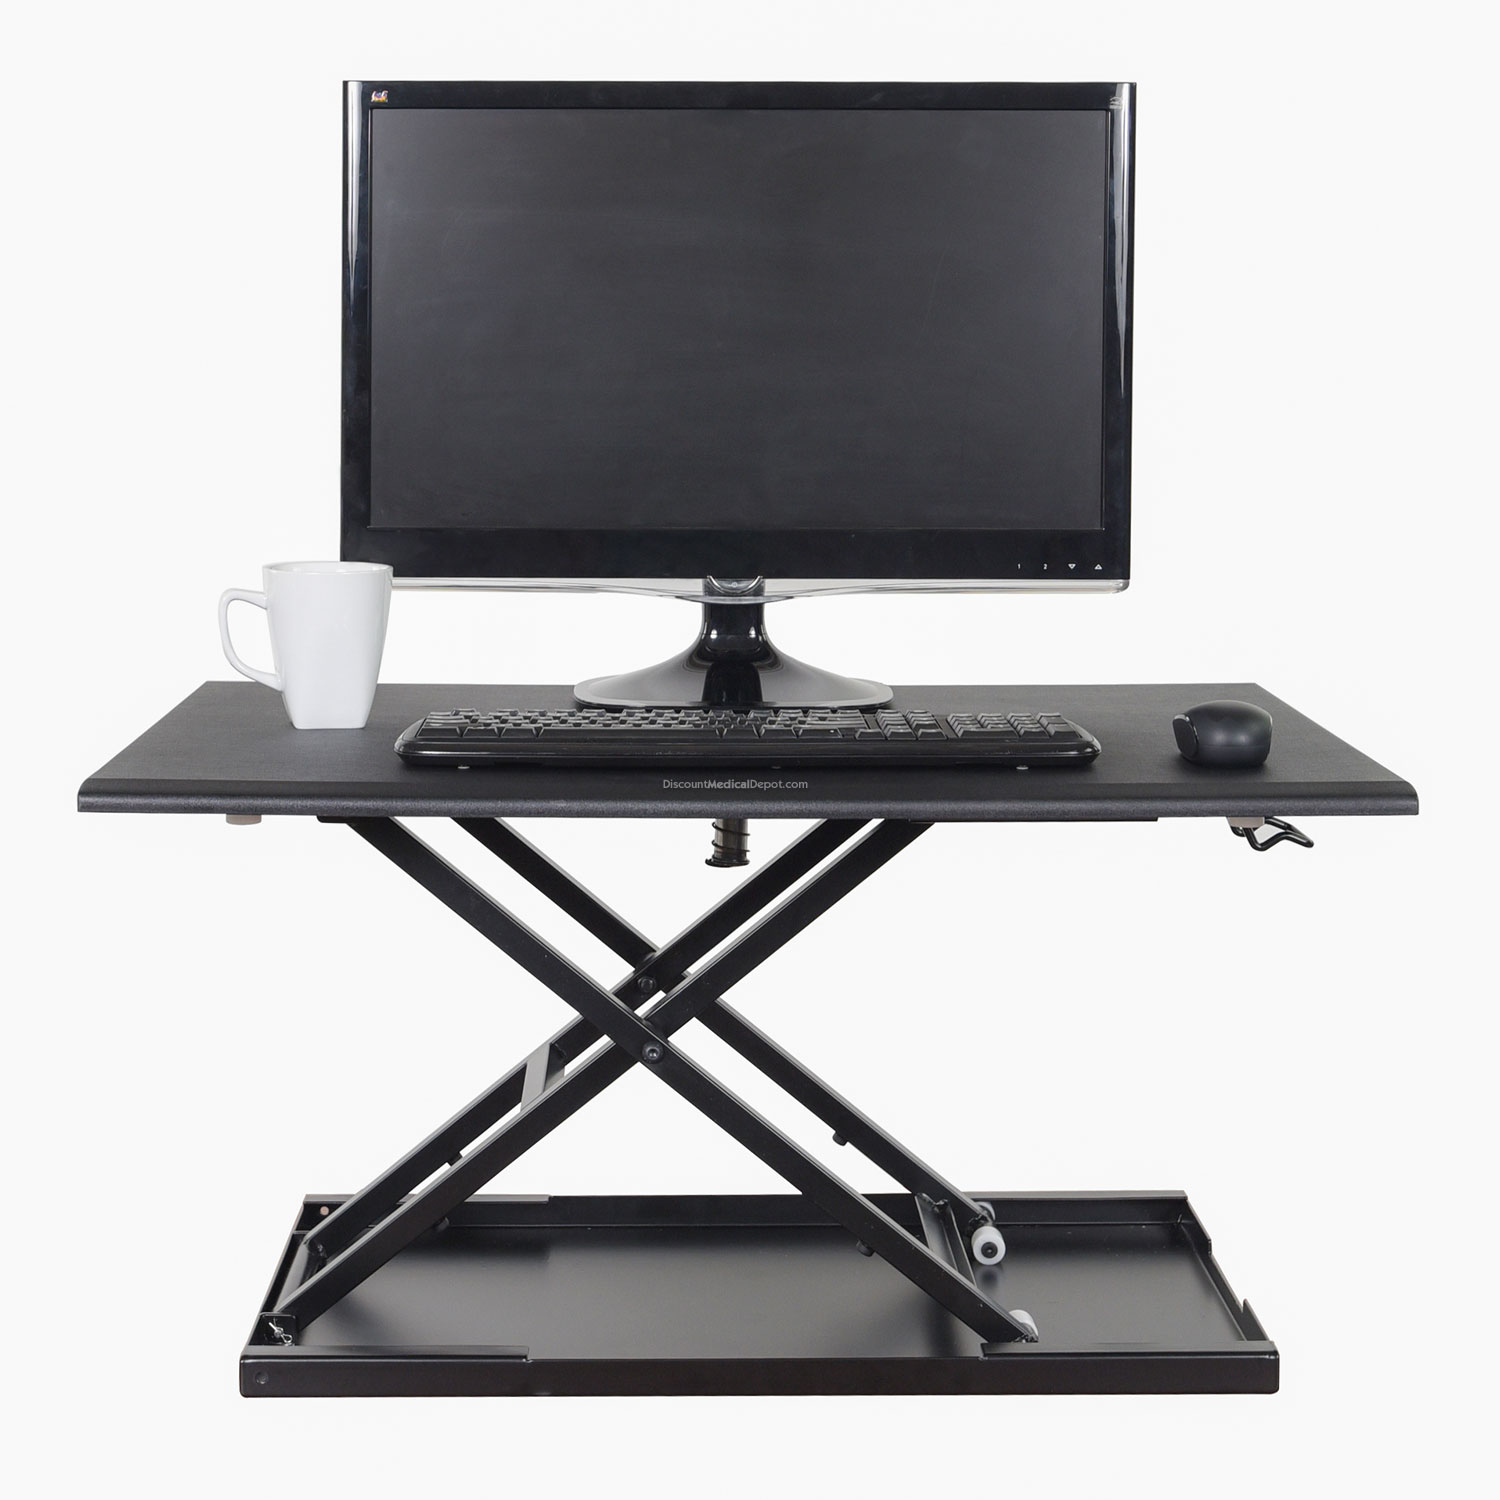 pneumatic adjustable stand up desk converter 32 inch wide converts any surface into a - Standing Desk Converter